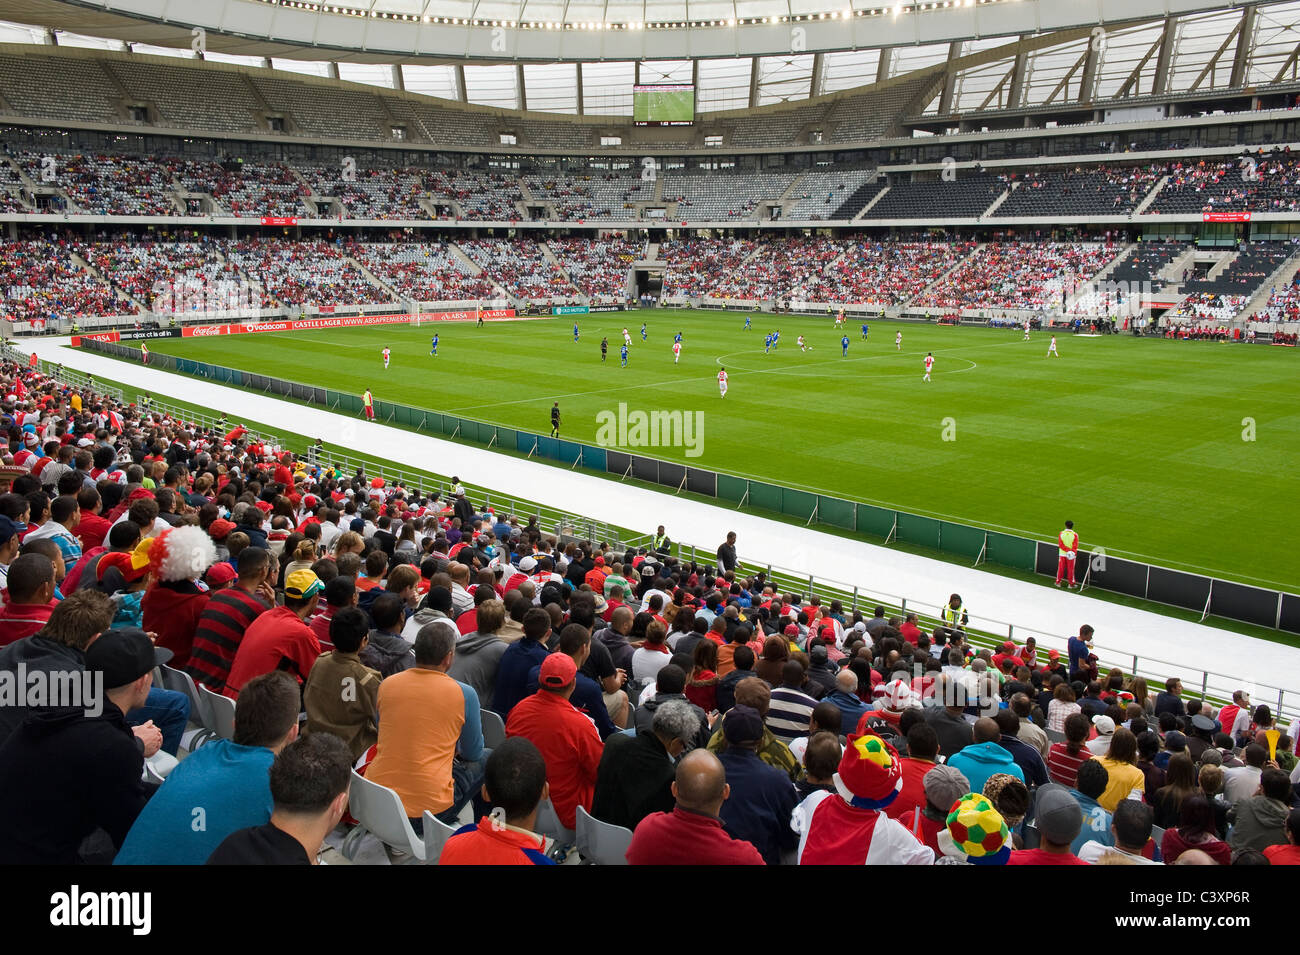 Supports watching a football match in Cape Town Stadium, Cape Town, Western Cape, South Africa - Stock Image